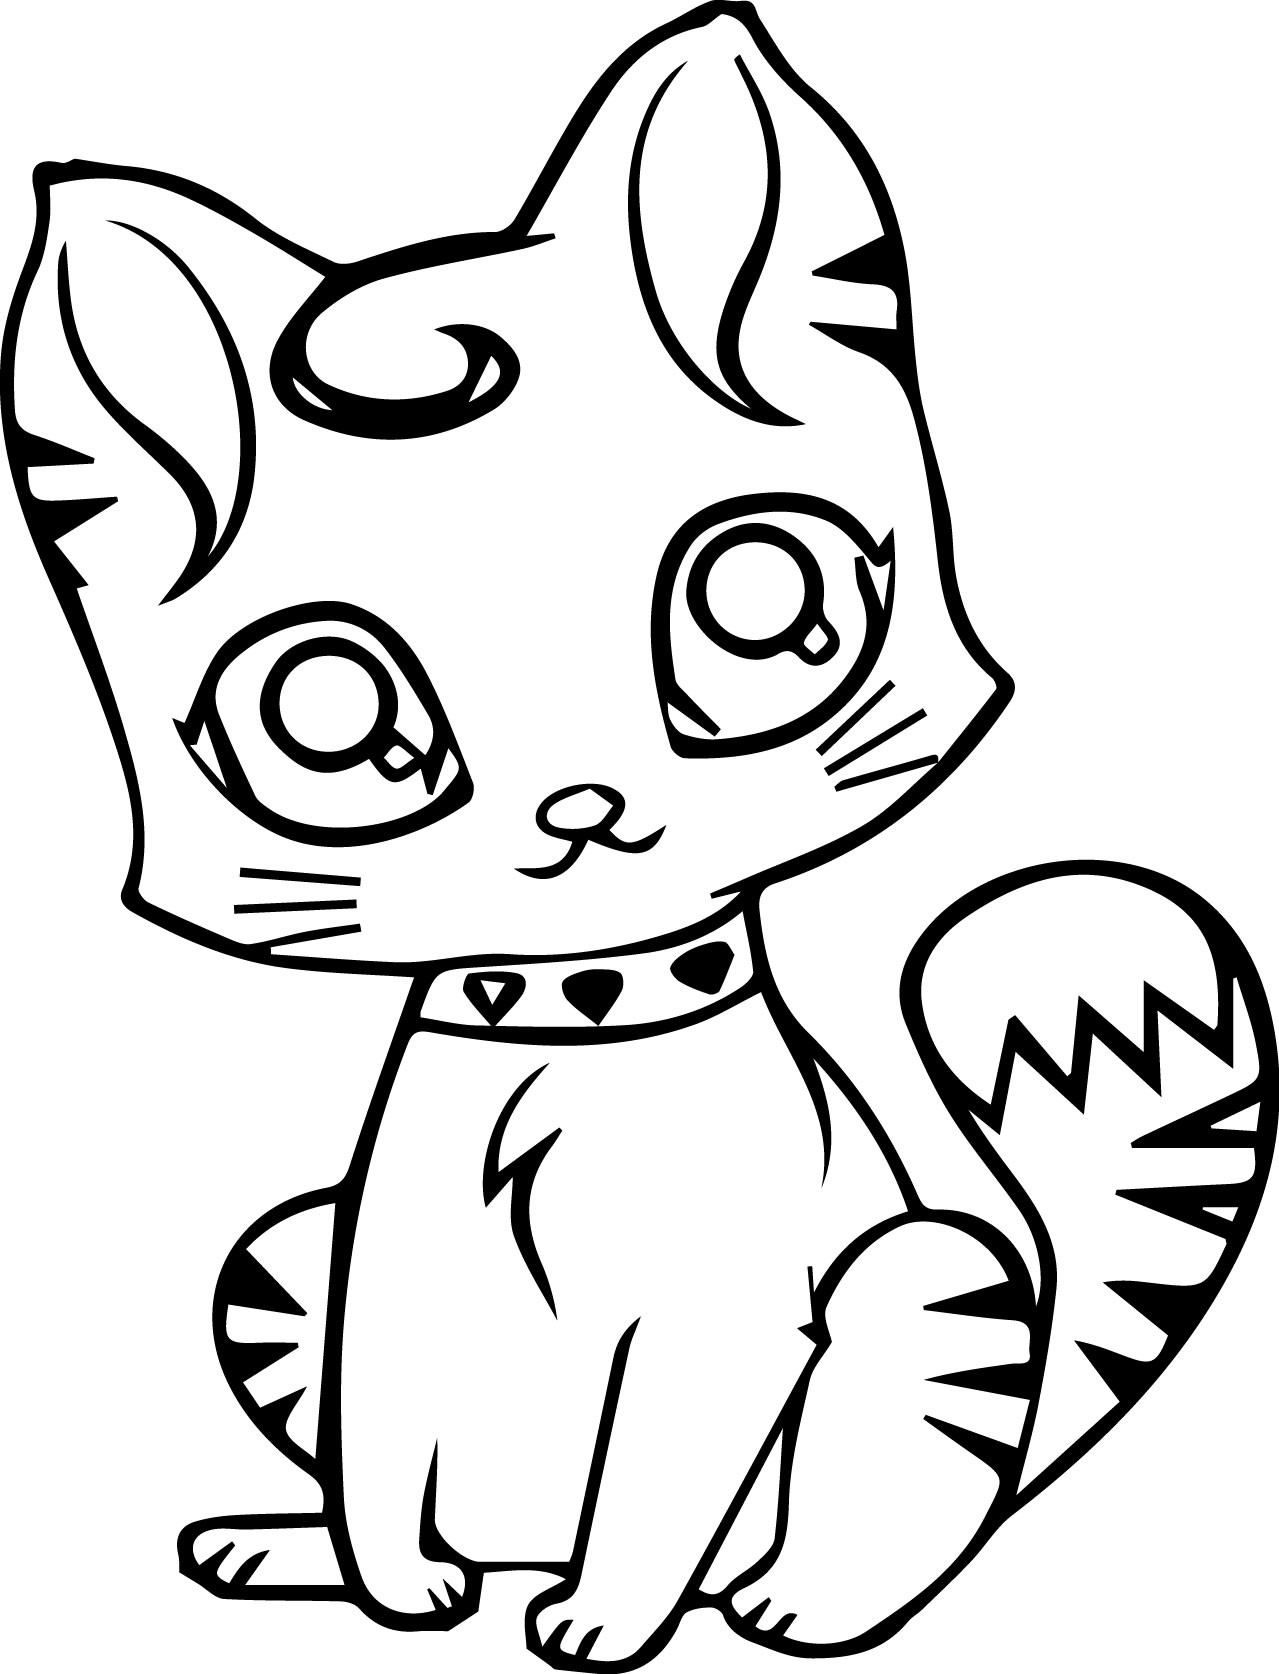 cat to color free printable cat coloring pages for kids color cat to